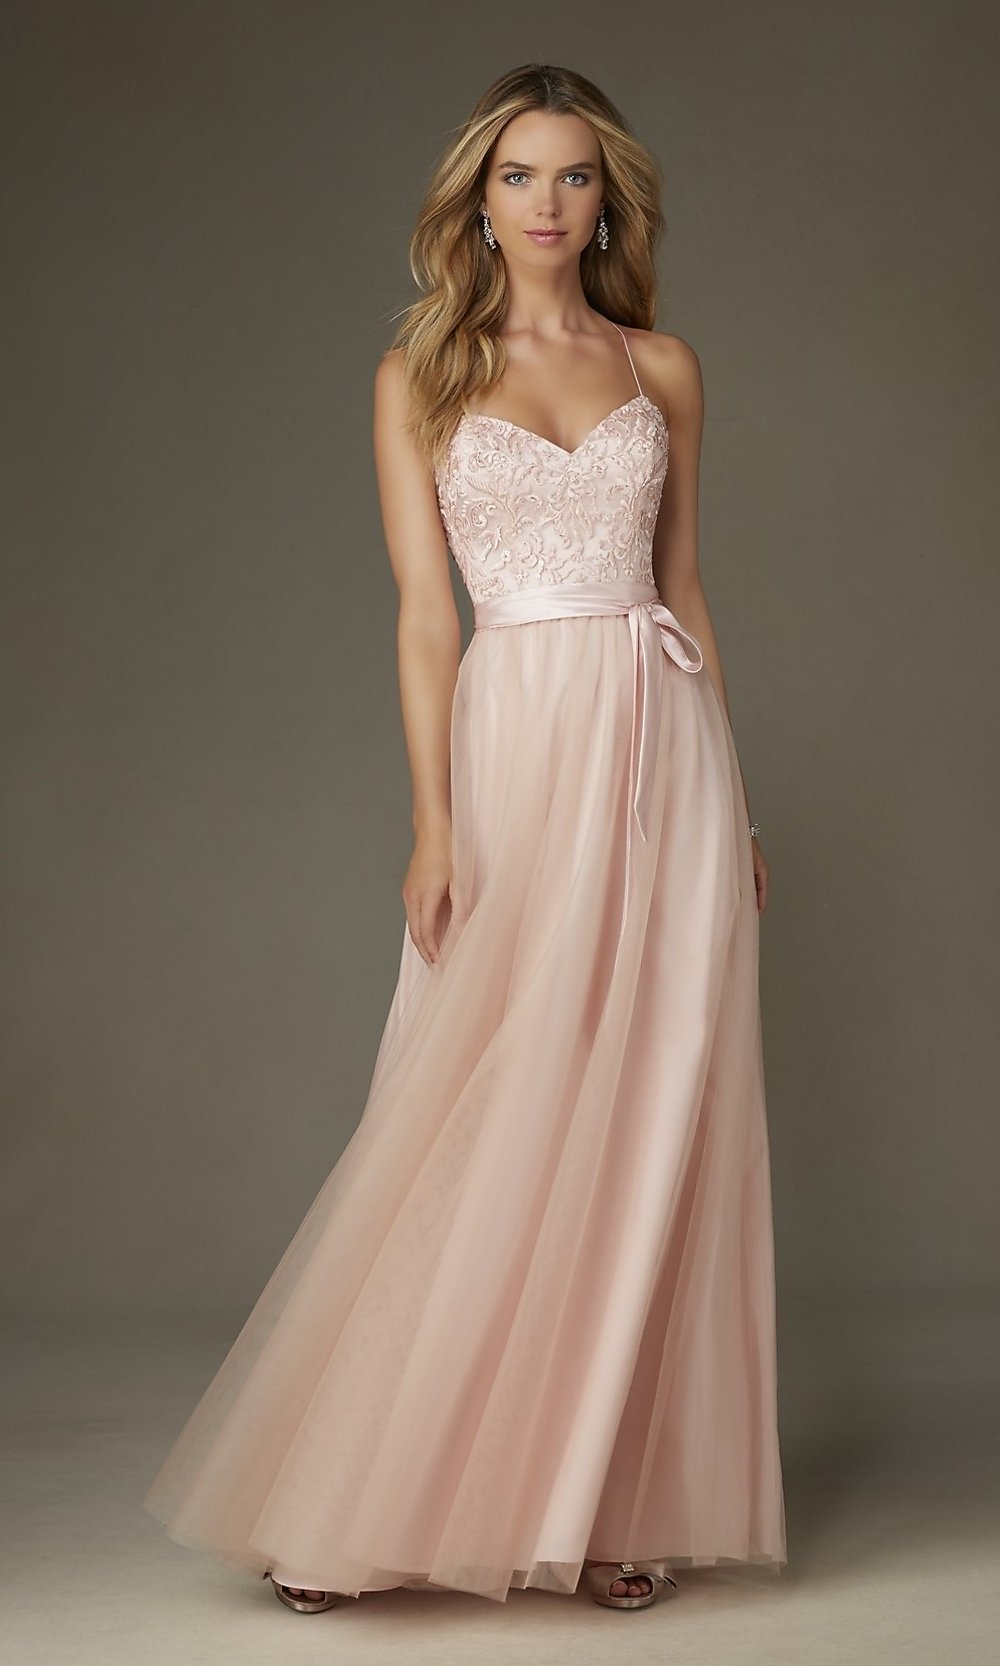 Champagne prom dress lace